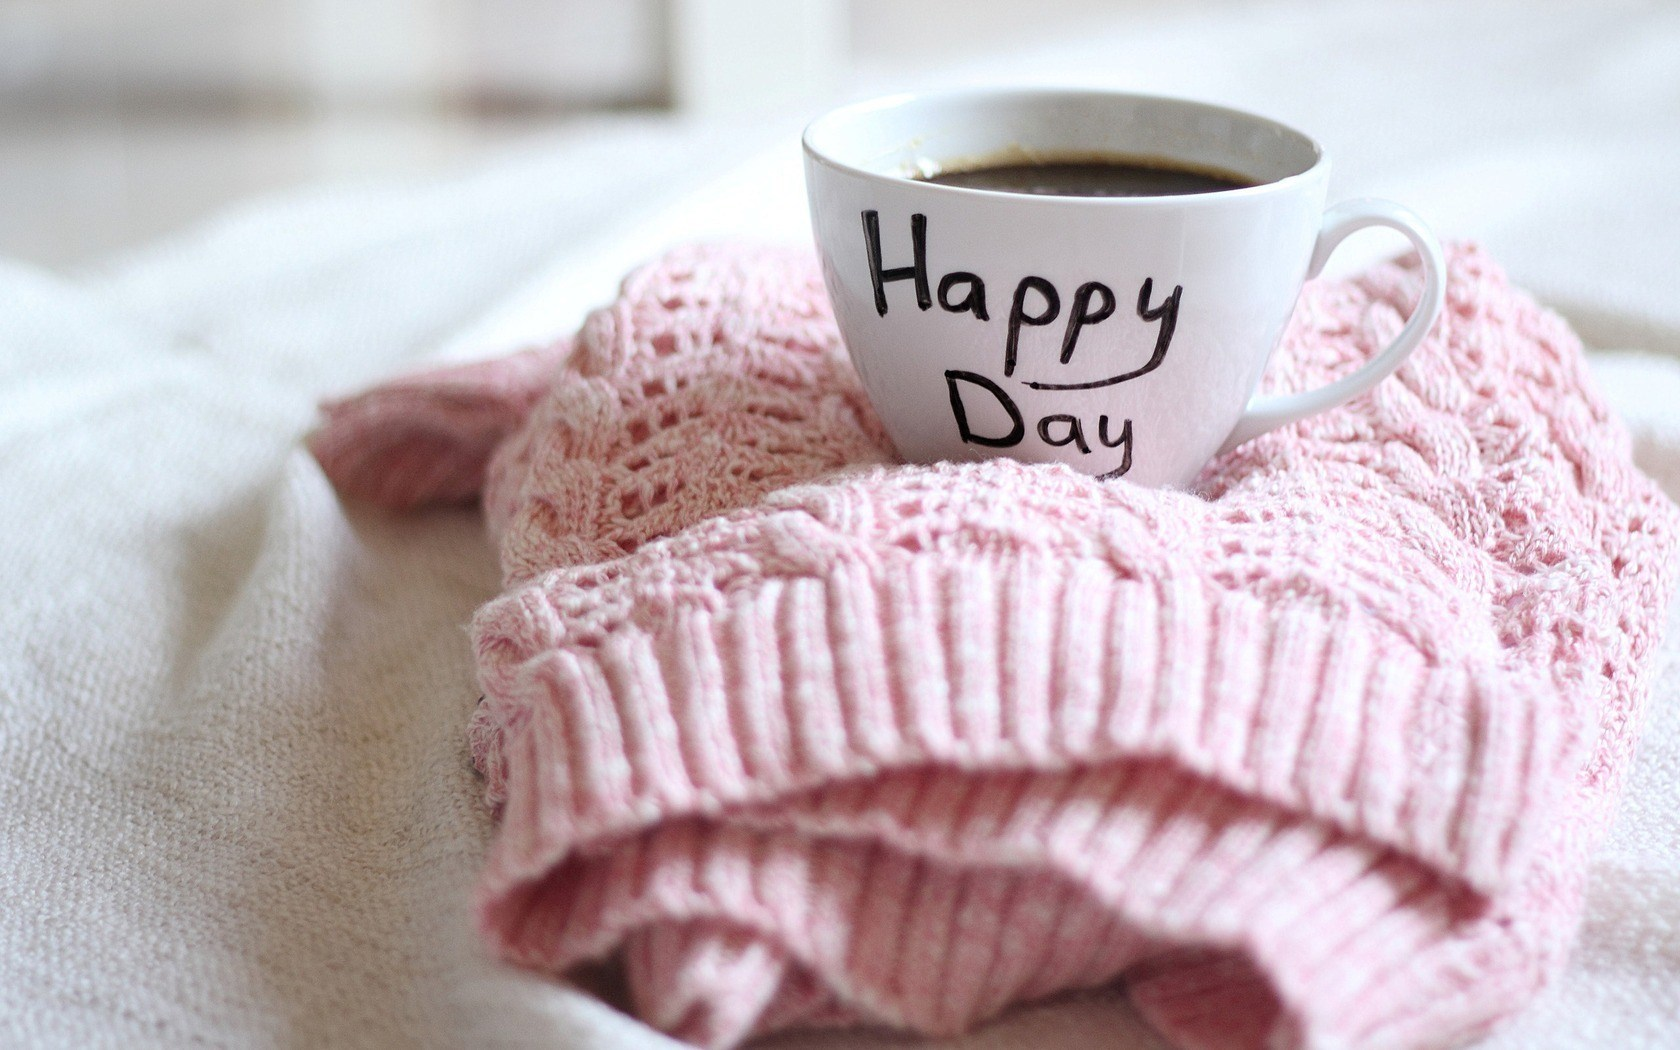 morning-happy-day-mug-hd-wallpaper